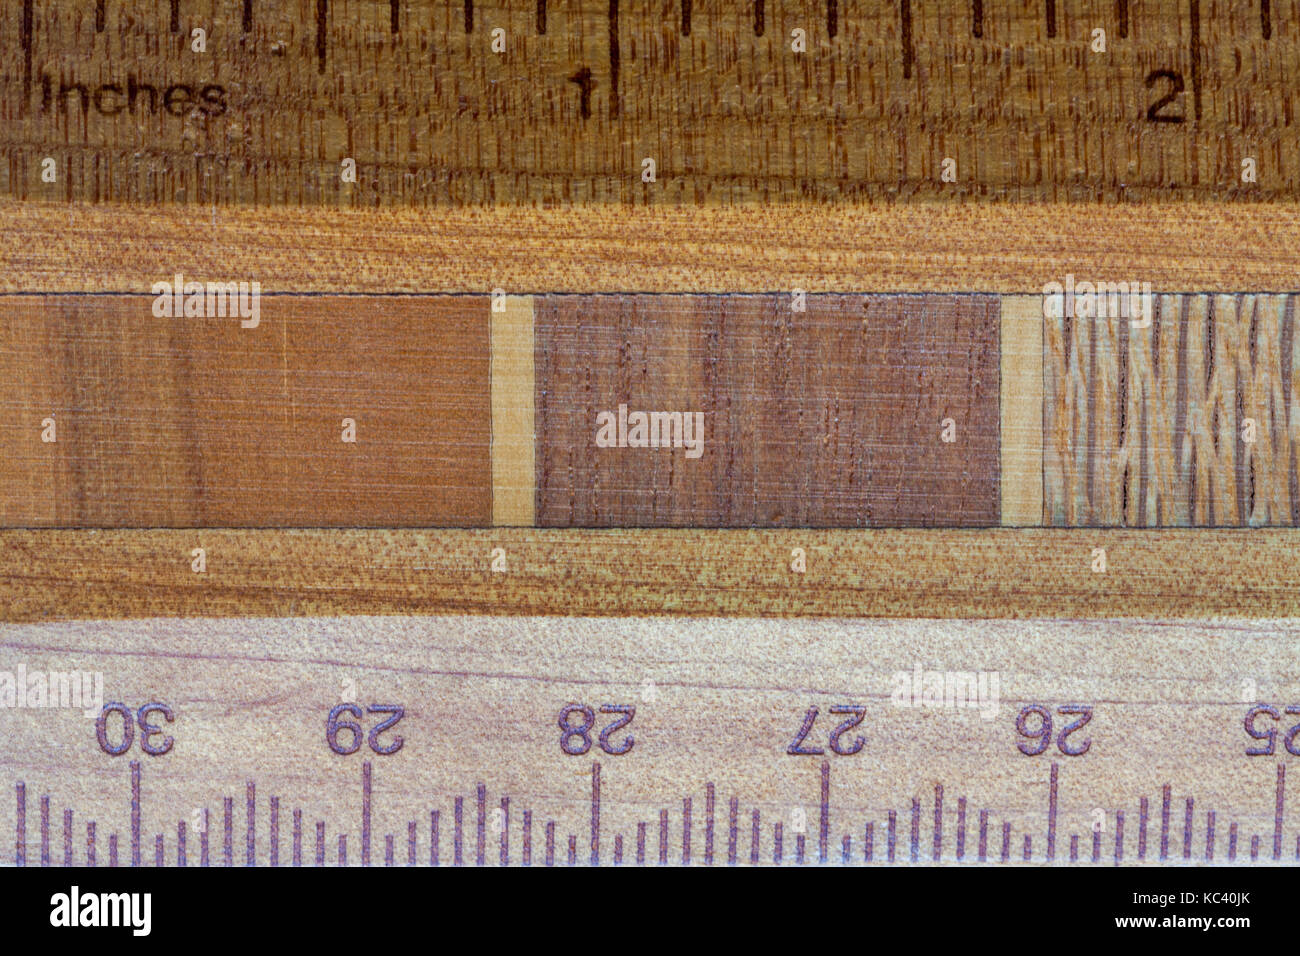 Detail of part of wooden ruler made with New Zealand timbers - woods shown are (left to right) miro, rata and rewarewa - Stock Image